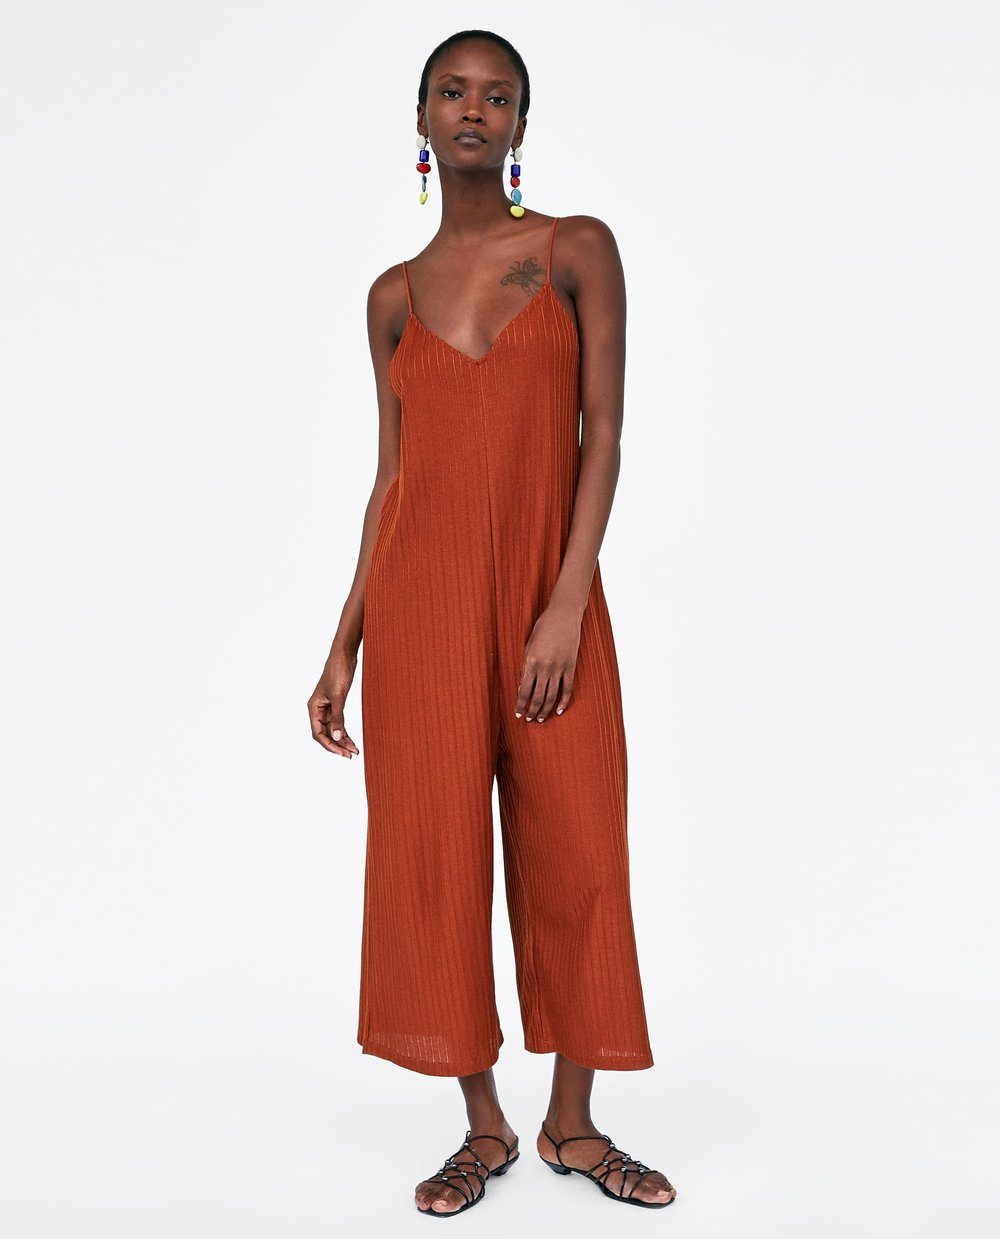 Zara-strappy-textured-jumpsuit.jpg